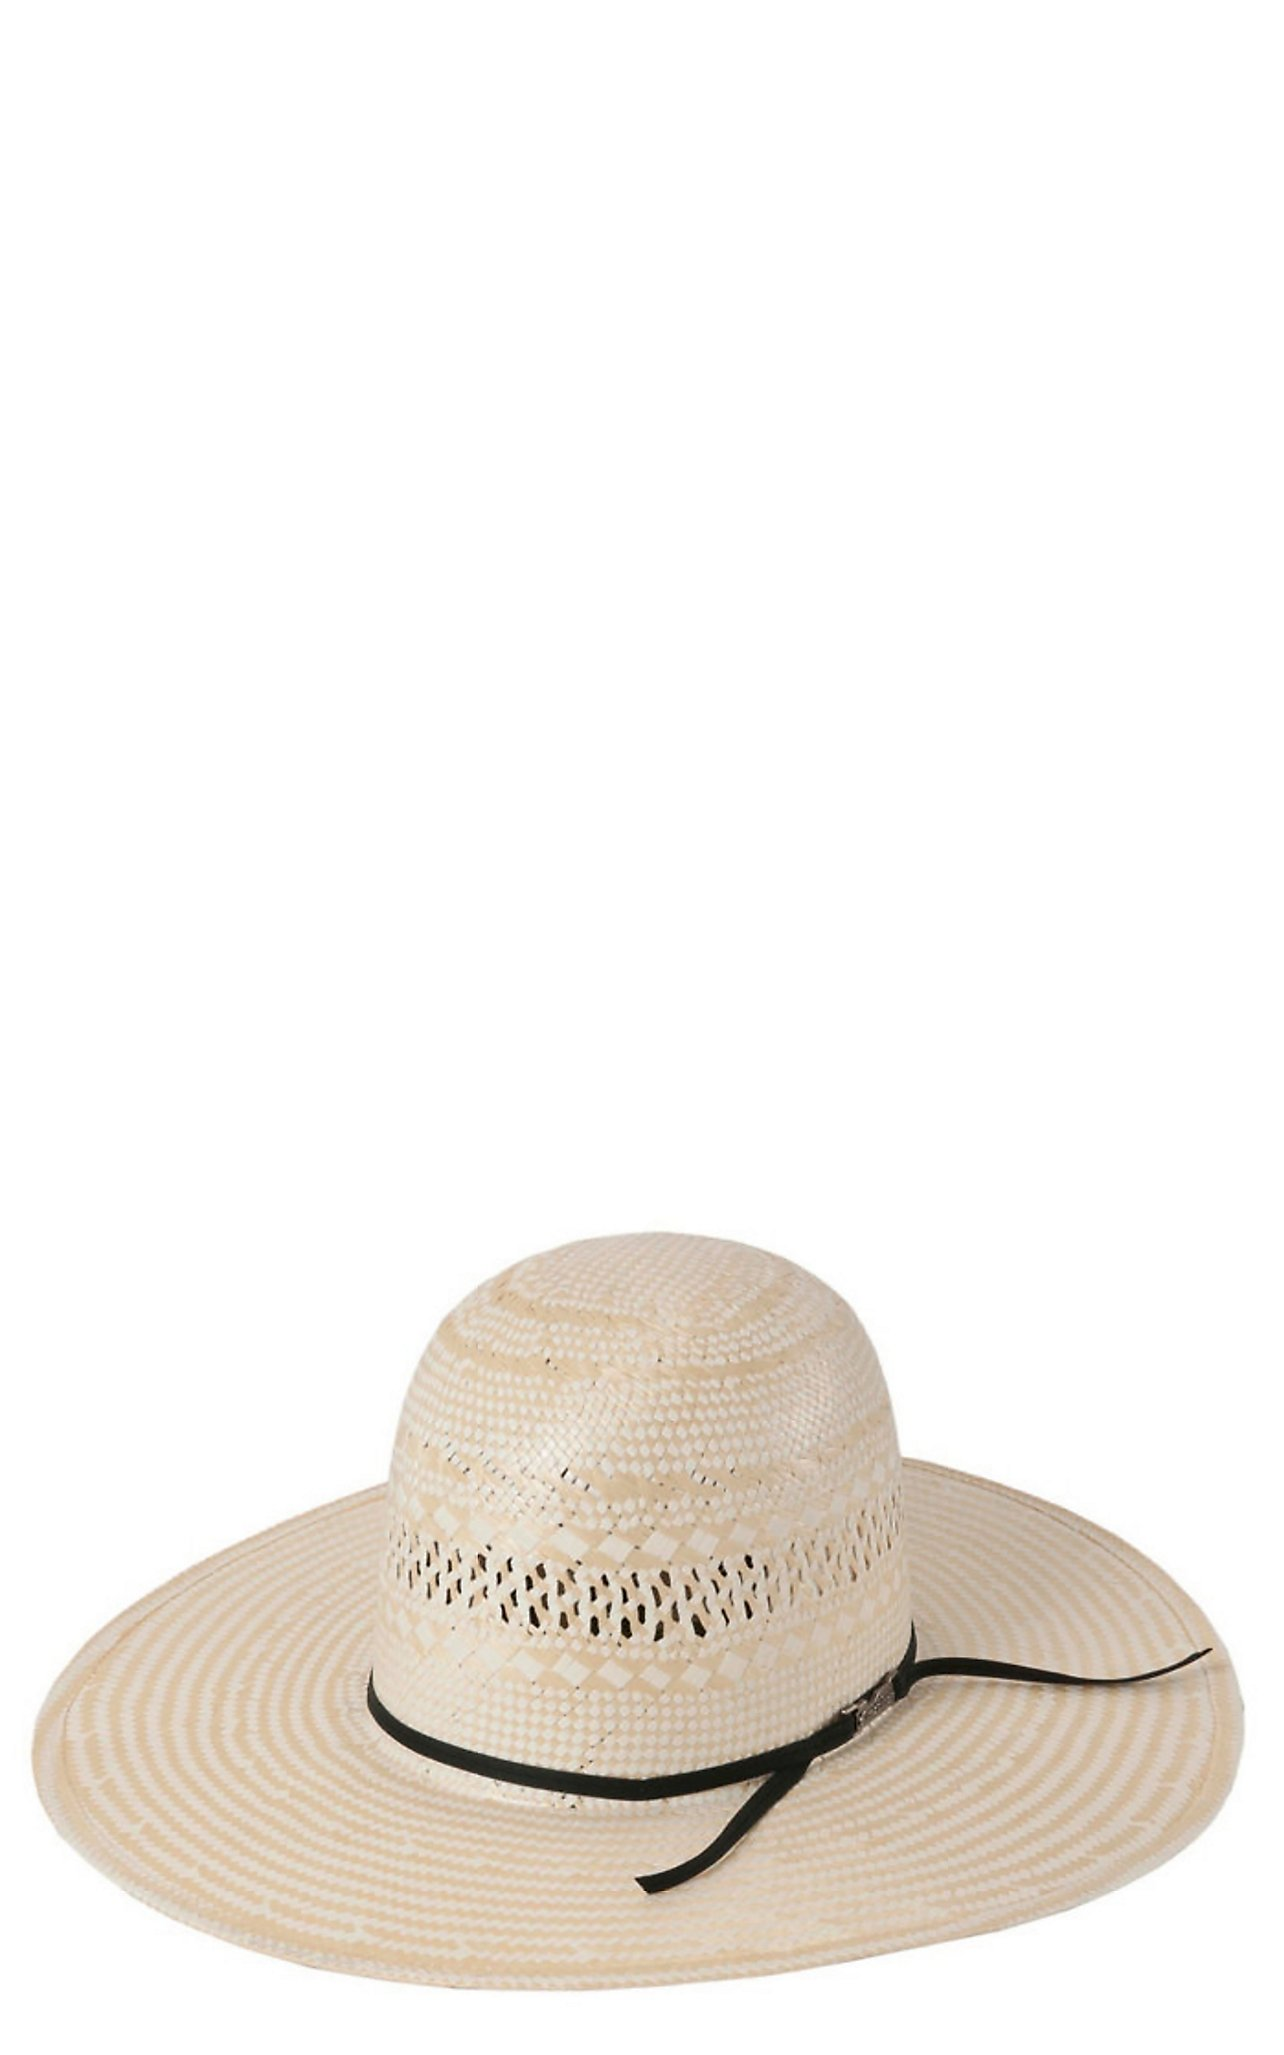 American Hat Co. Two-Tone Vented Open Crown Shantung Straw Cowboy Hat cb6c6ba2a10f